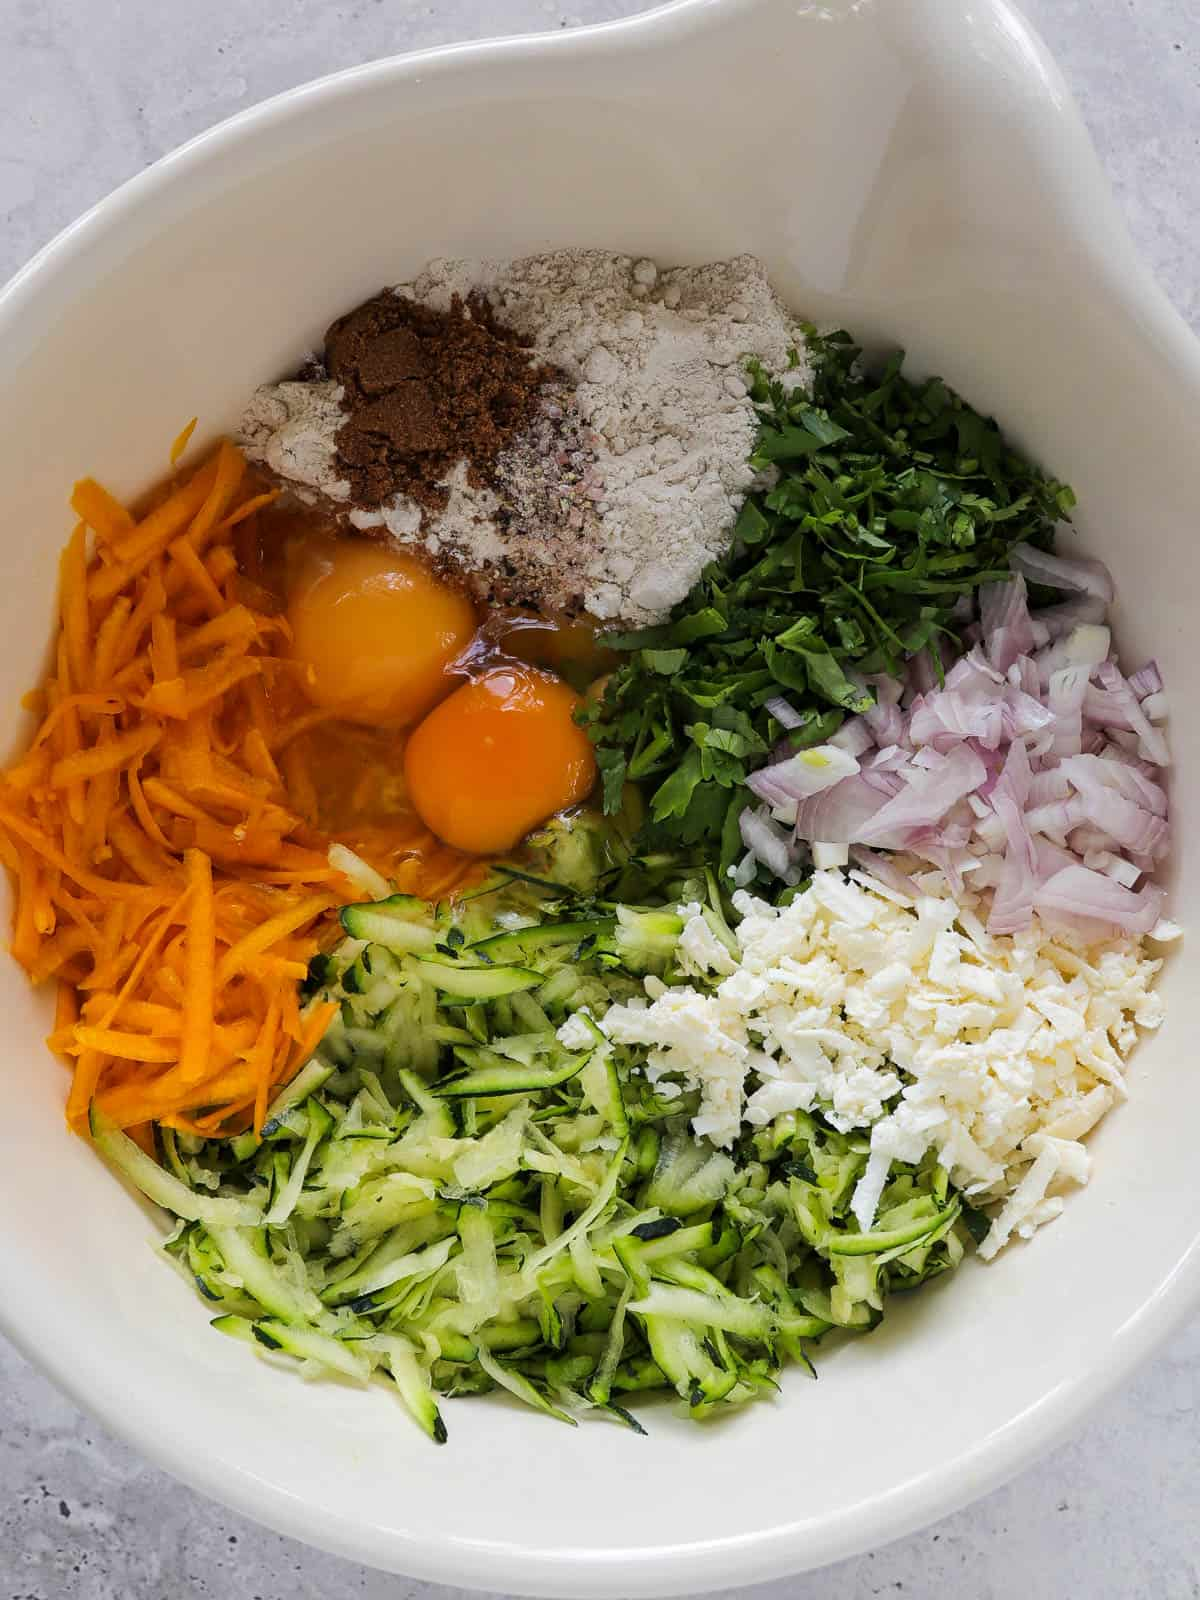 Fritter ingredients in mixing bowl.